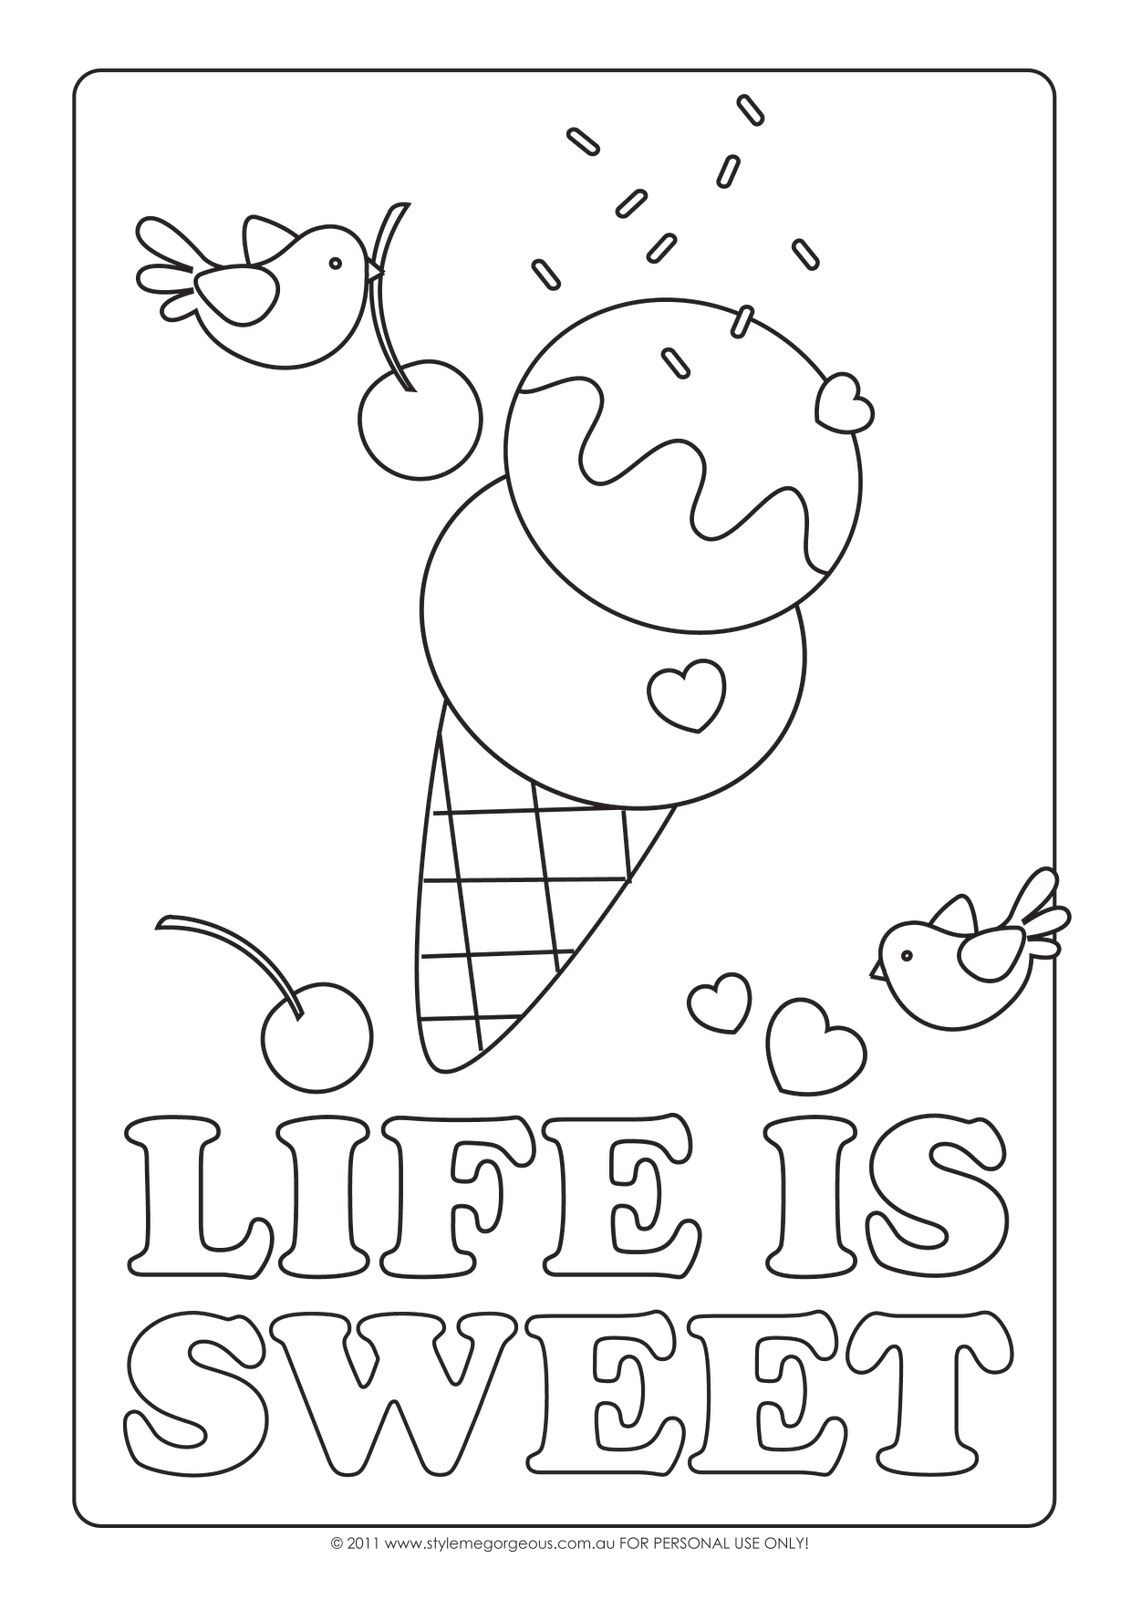 Abcs - Style Me Gorgeous: Life Is Sweet - Free Coloring Page - Ice Cream Color Pages Printable Free